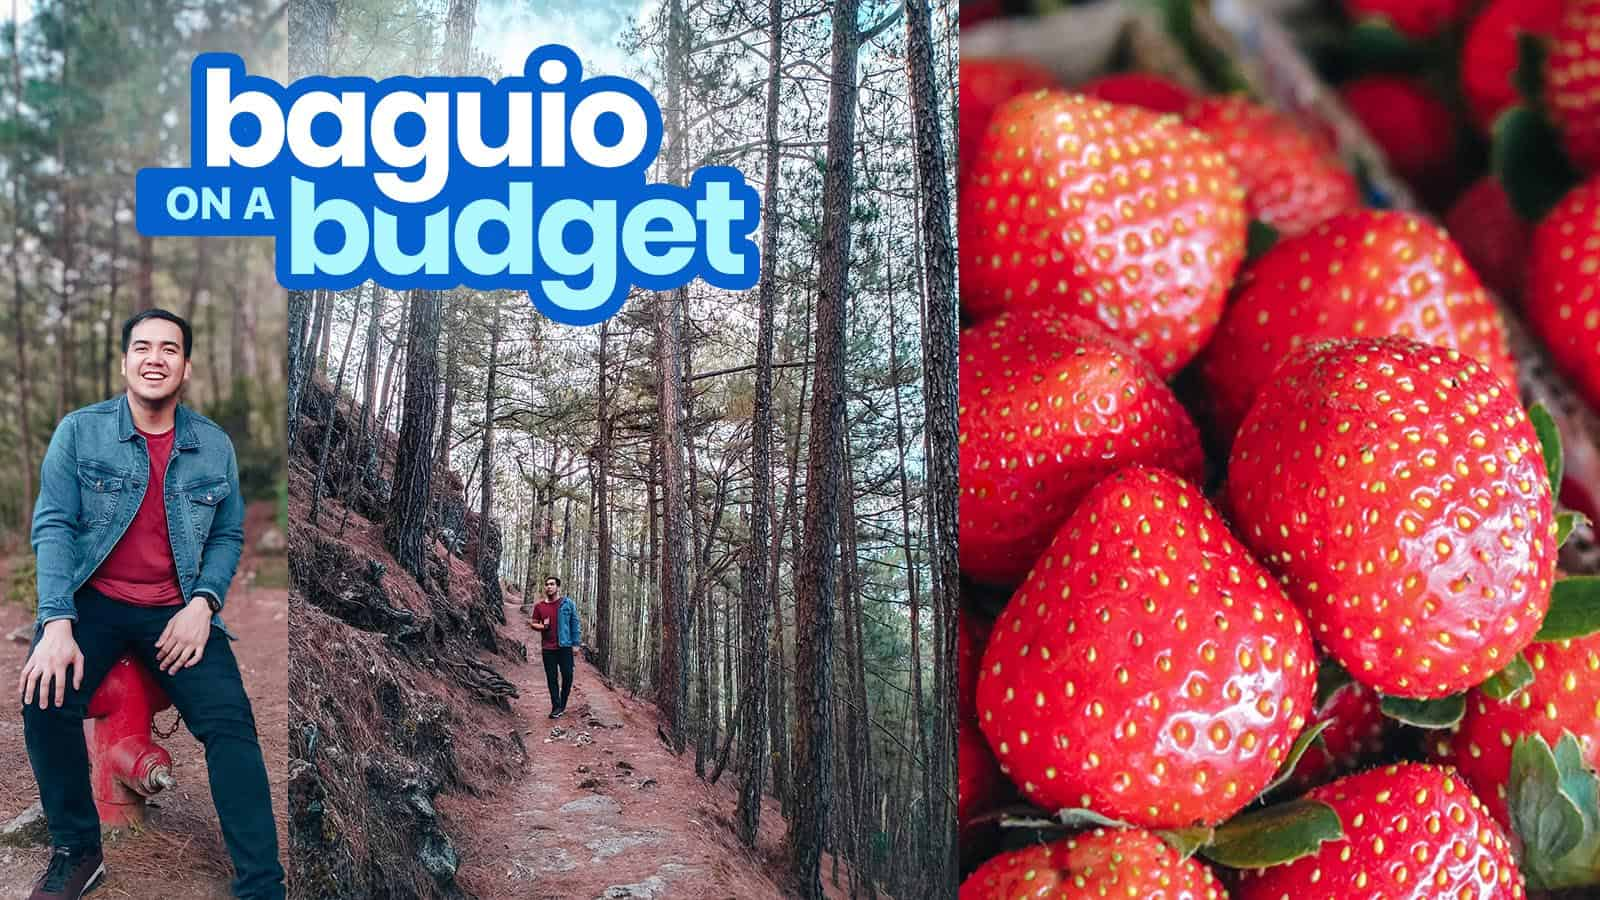 2020 BAGUIO CITY TRAVEL GUIDE with Budget Itinerary